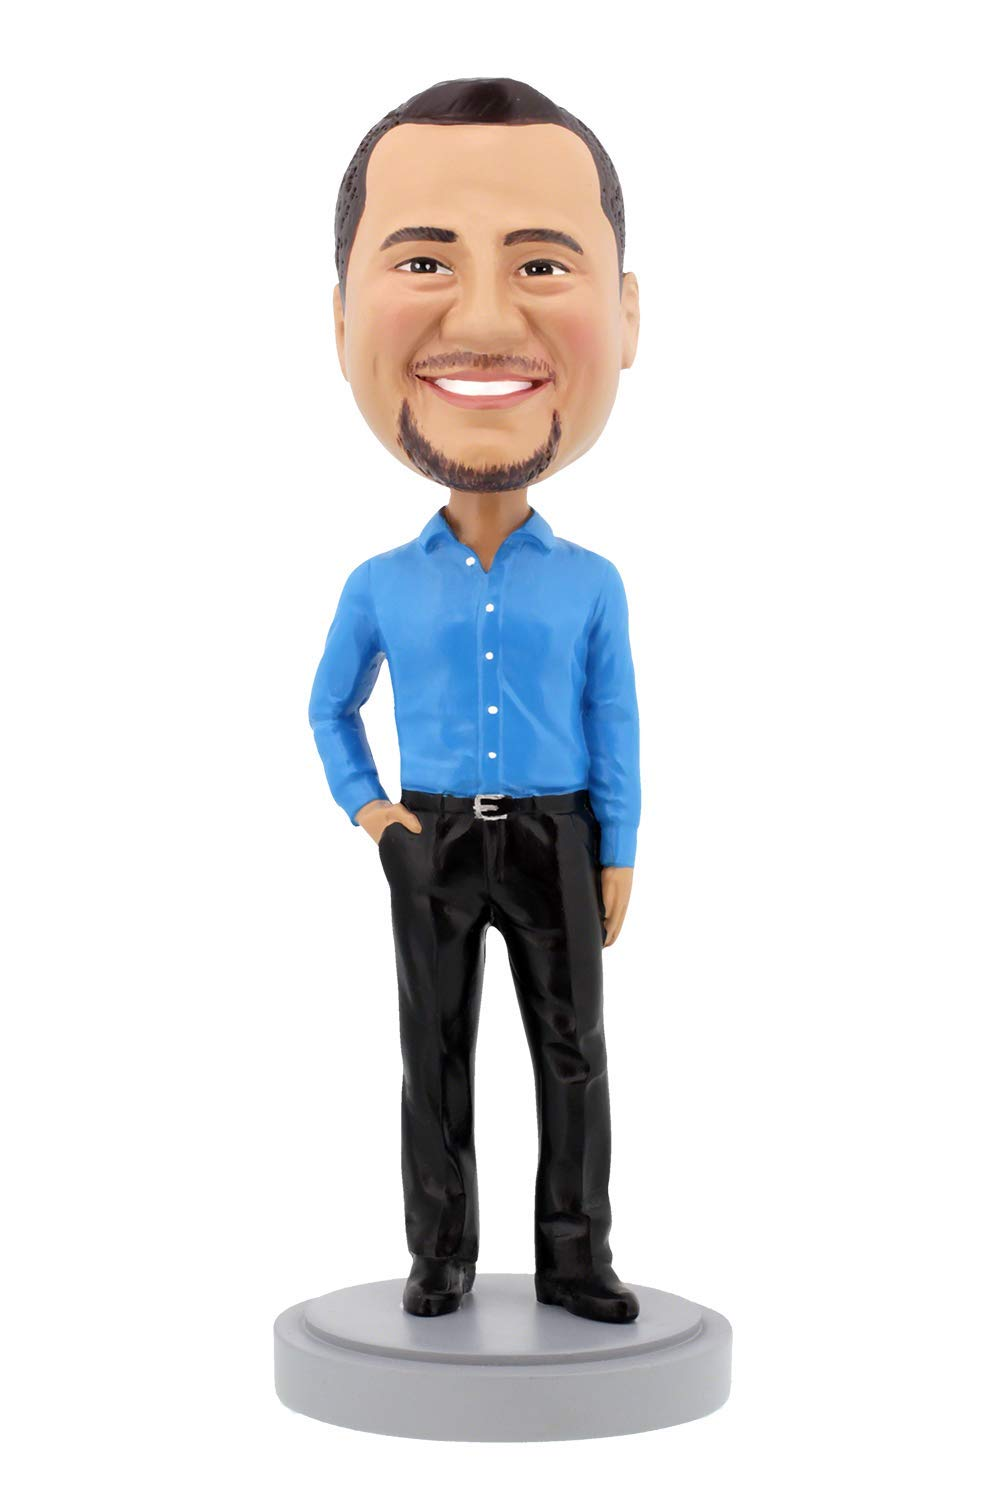 Custom Bobbleheads - Slender Male Executive with Hand in Pocket Body - Personalized Gifts by Royal Bobbles